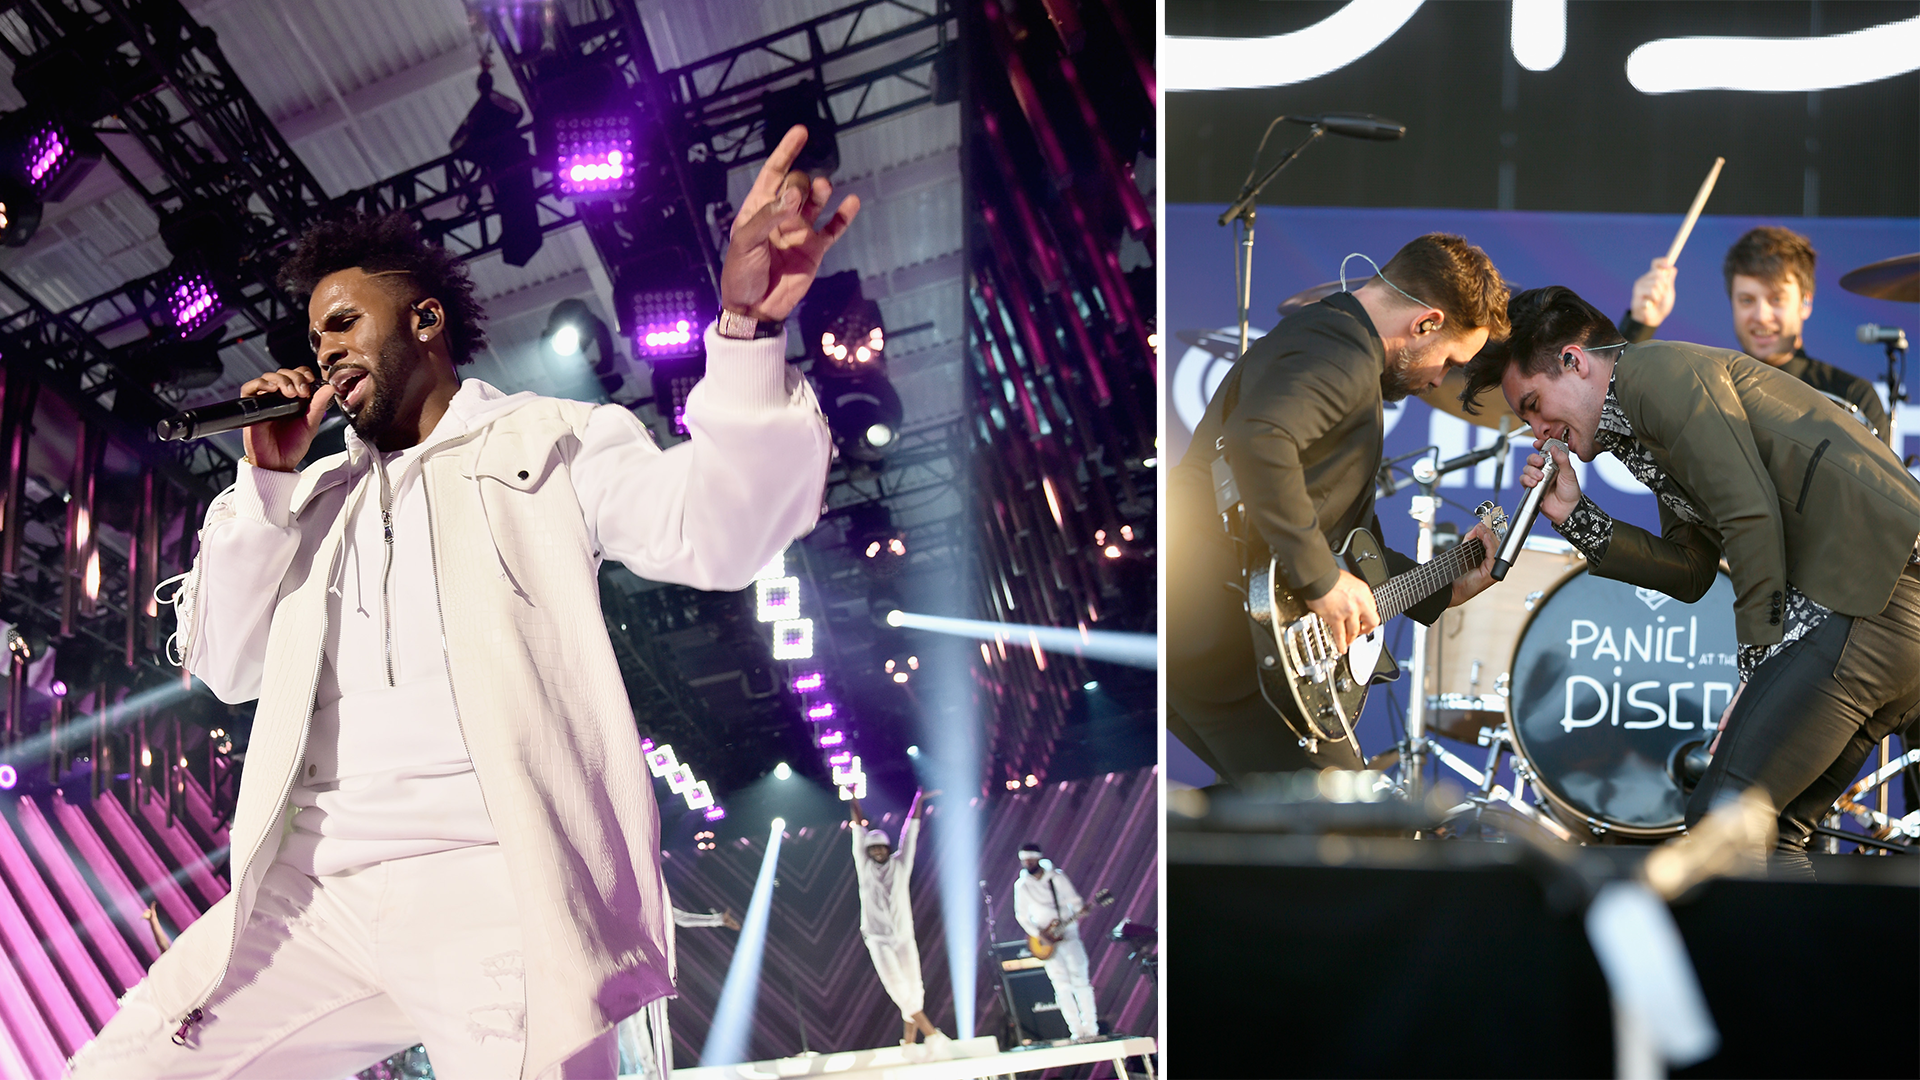 Jason Derulo, Panic! at the Disco to play New Year's Eve ...